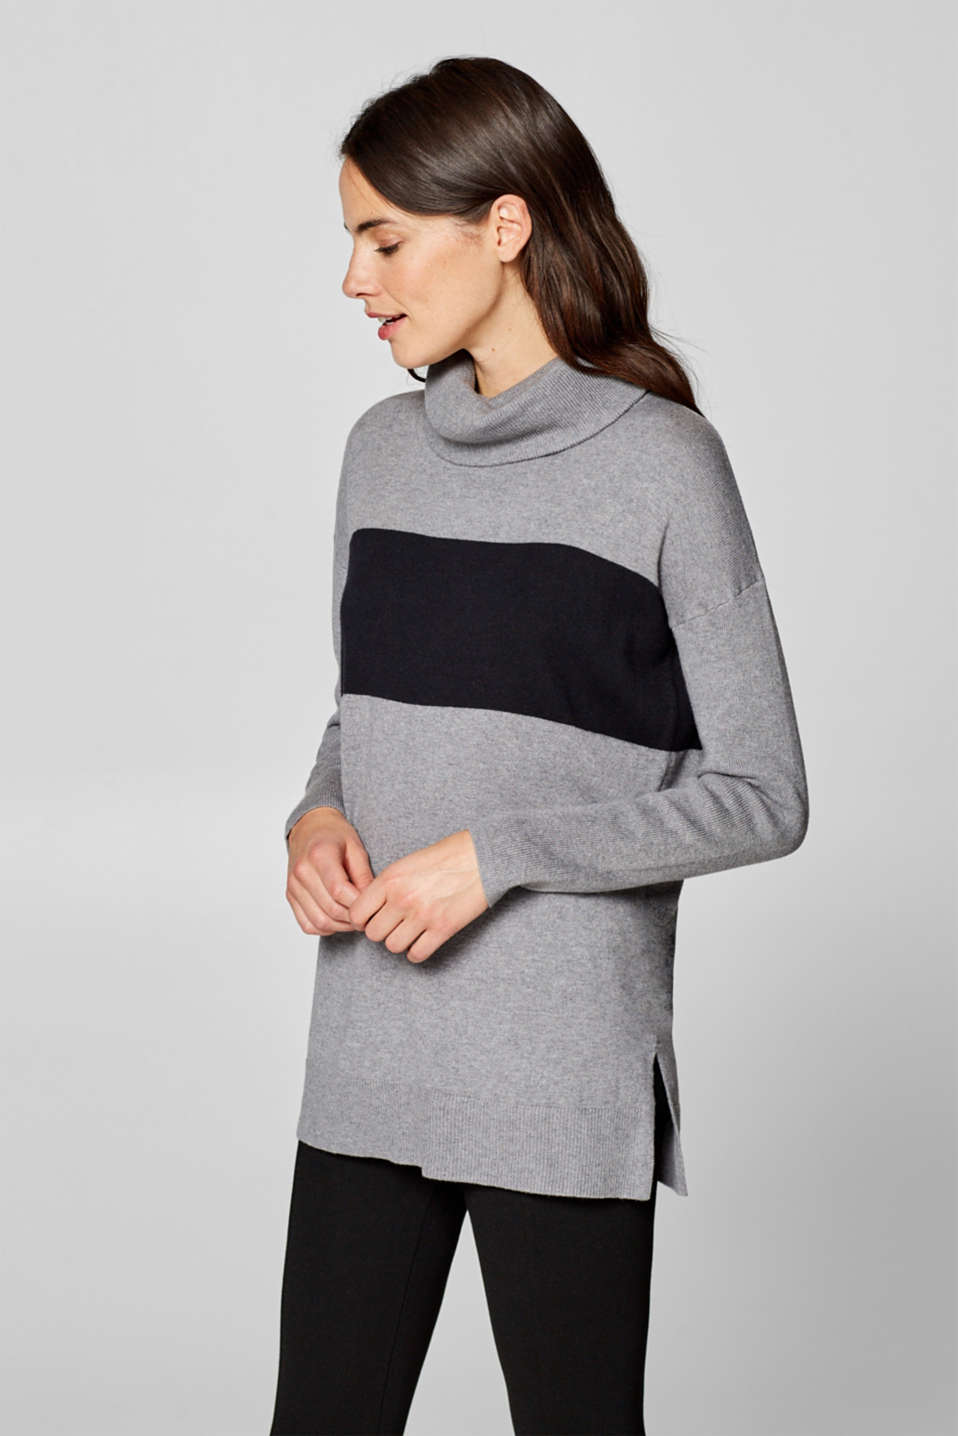 Esprit - Long polo neck jumper, plain or striped